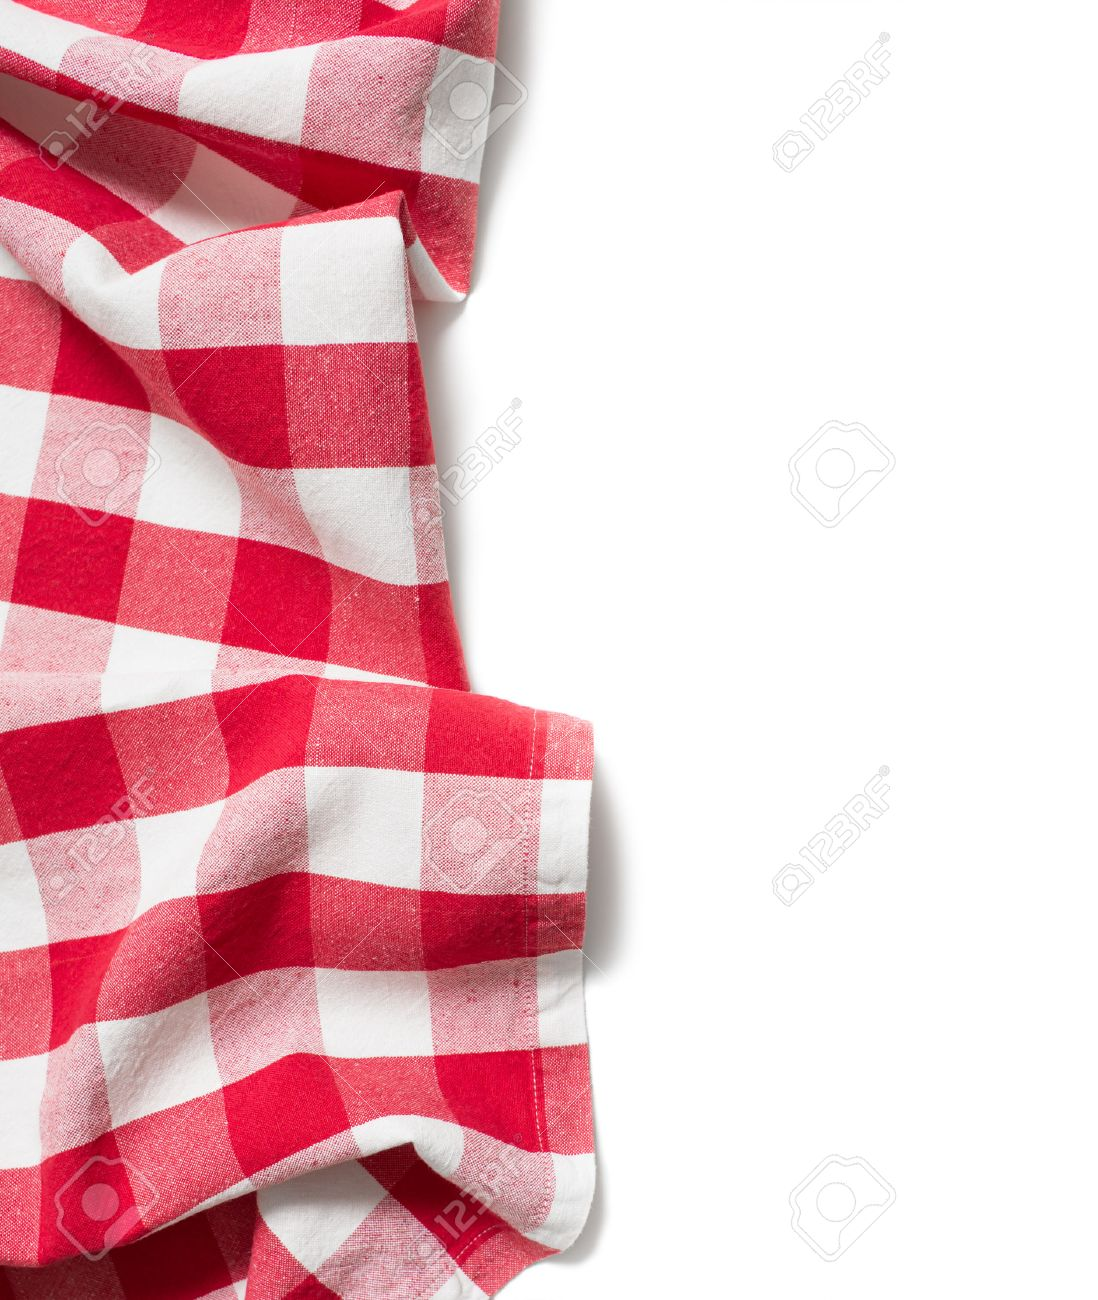 Gingham Border Images & Stock Pictures. Royalty Free Gingham ...